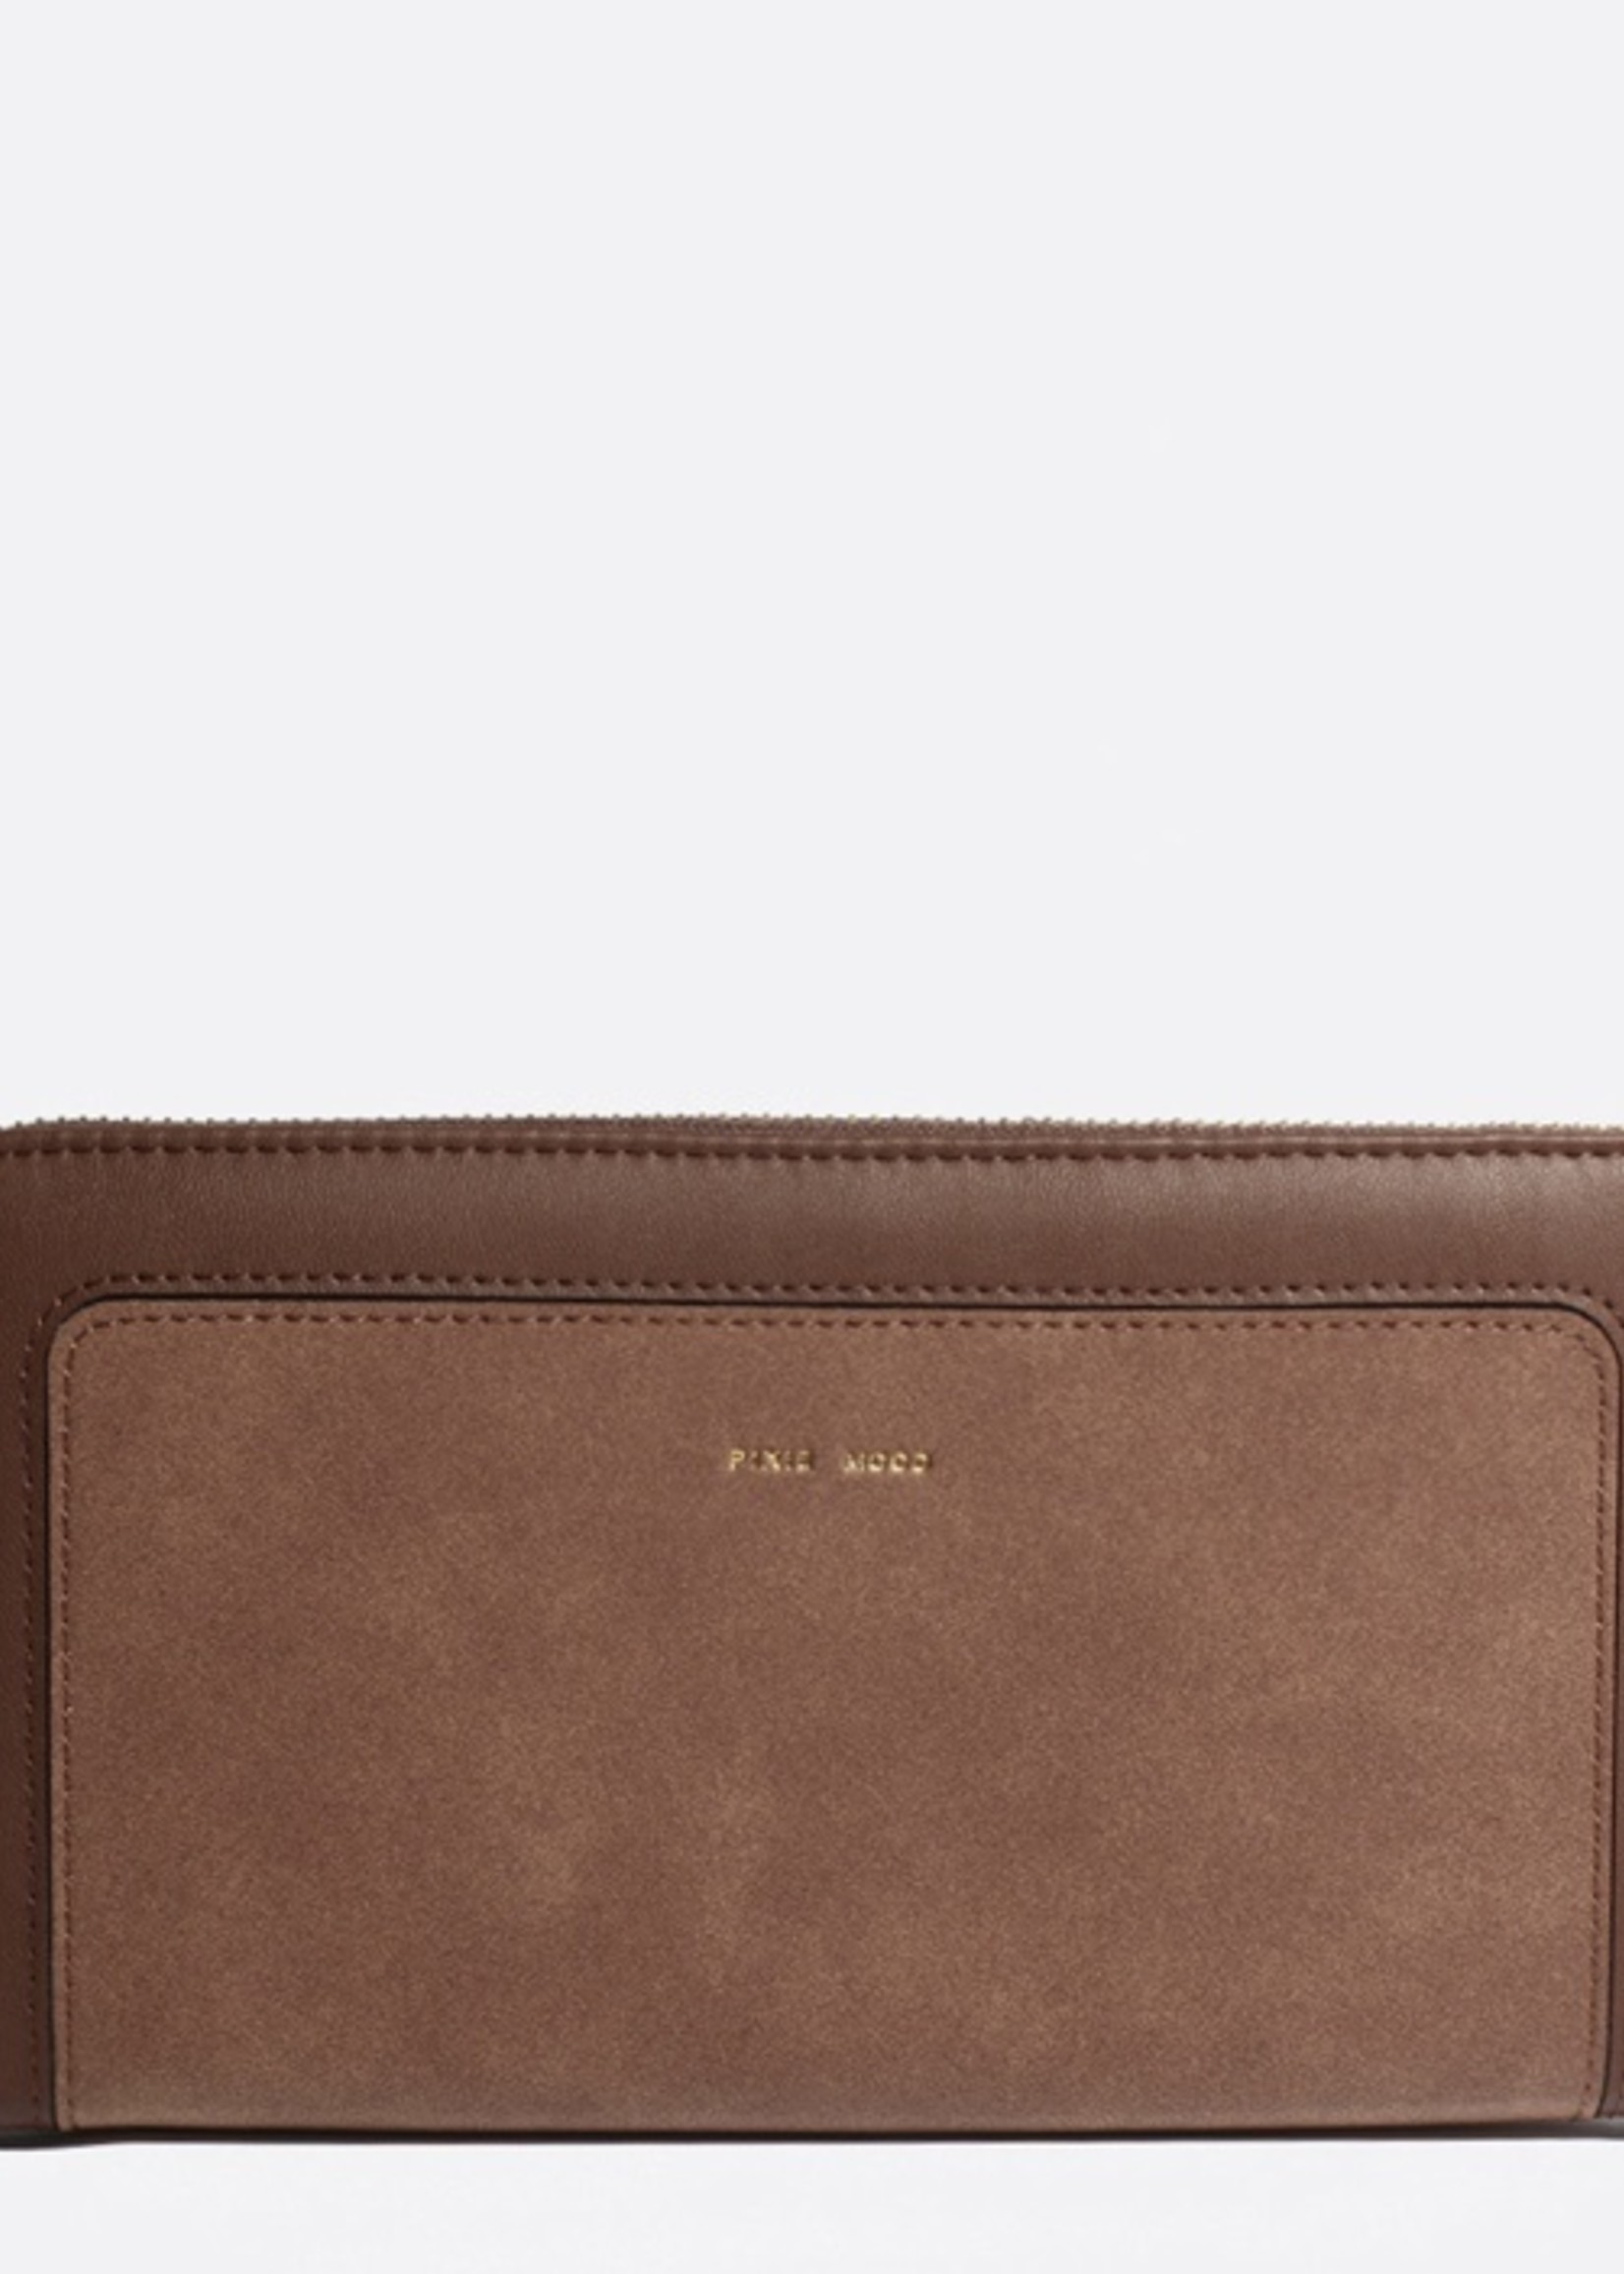 PIXIE MOOD Emma Ziparound Wallet DARK OAK/NUBUCK